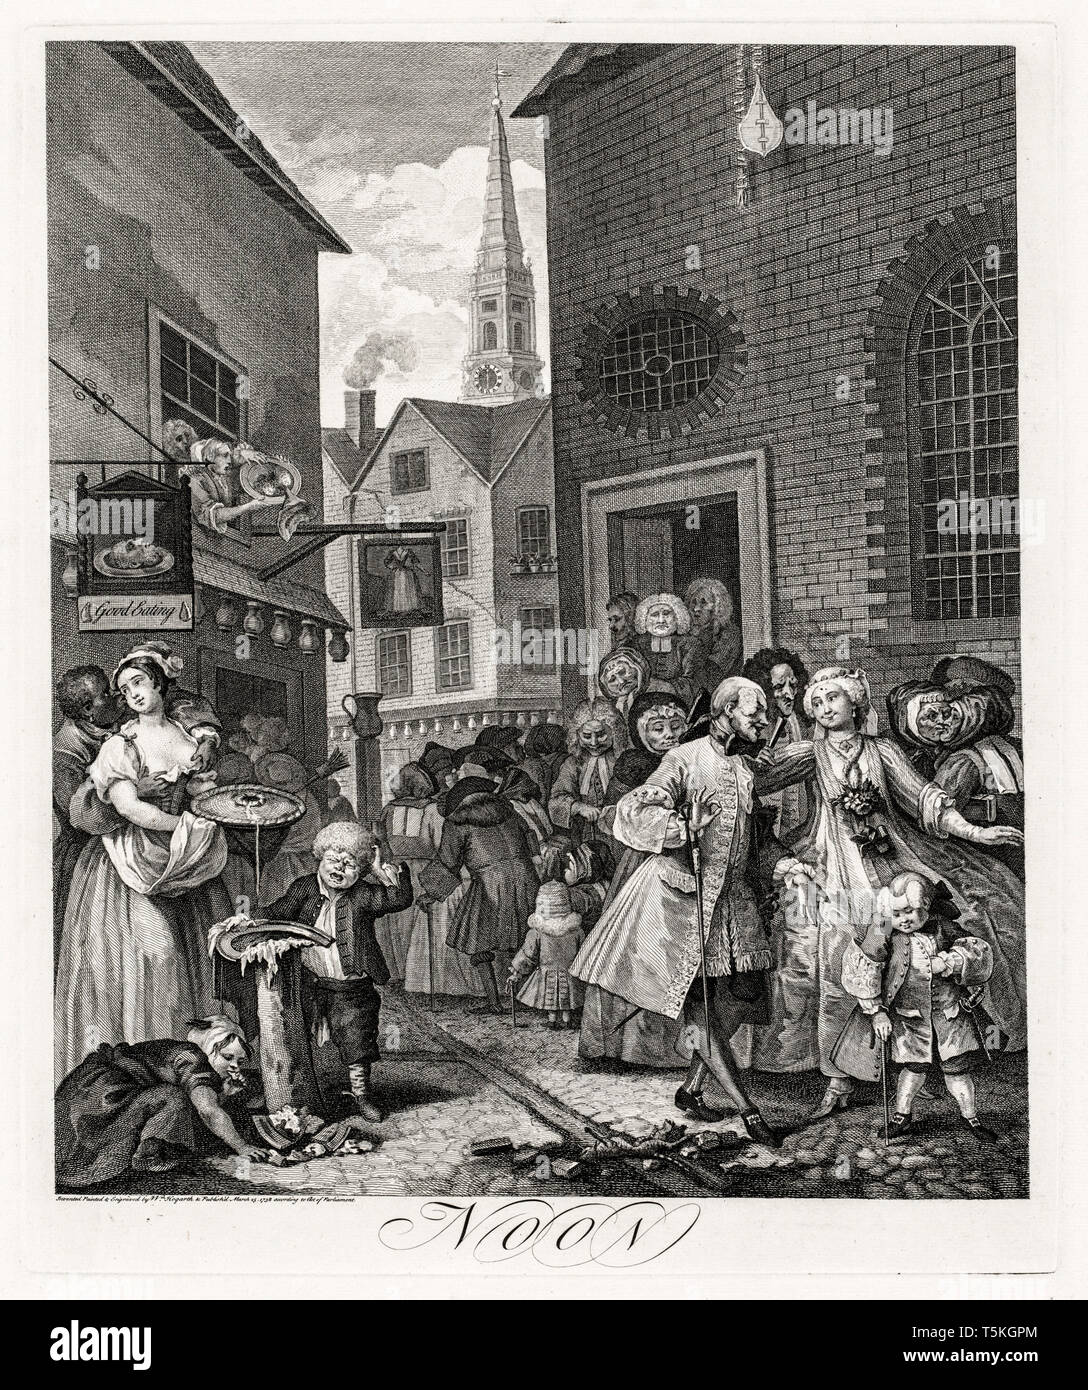 William Hogarth, The Four Times of Day: Noon, engraving, 1738 Stock Photo